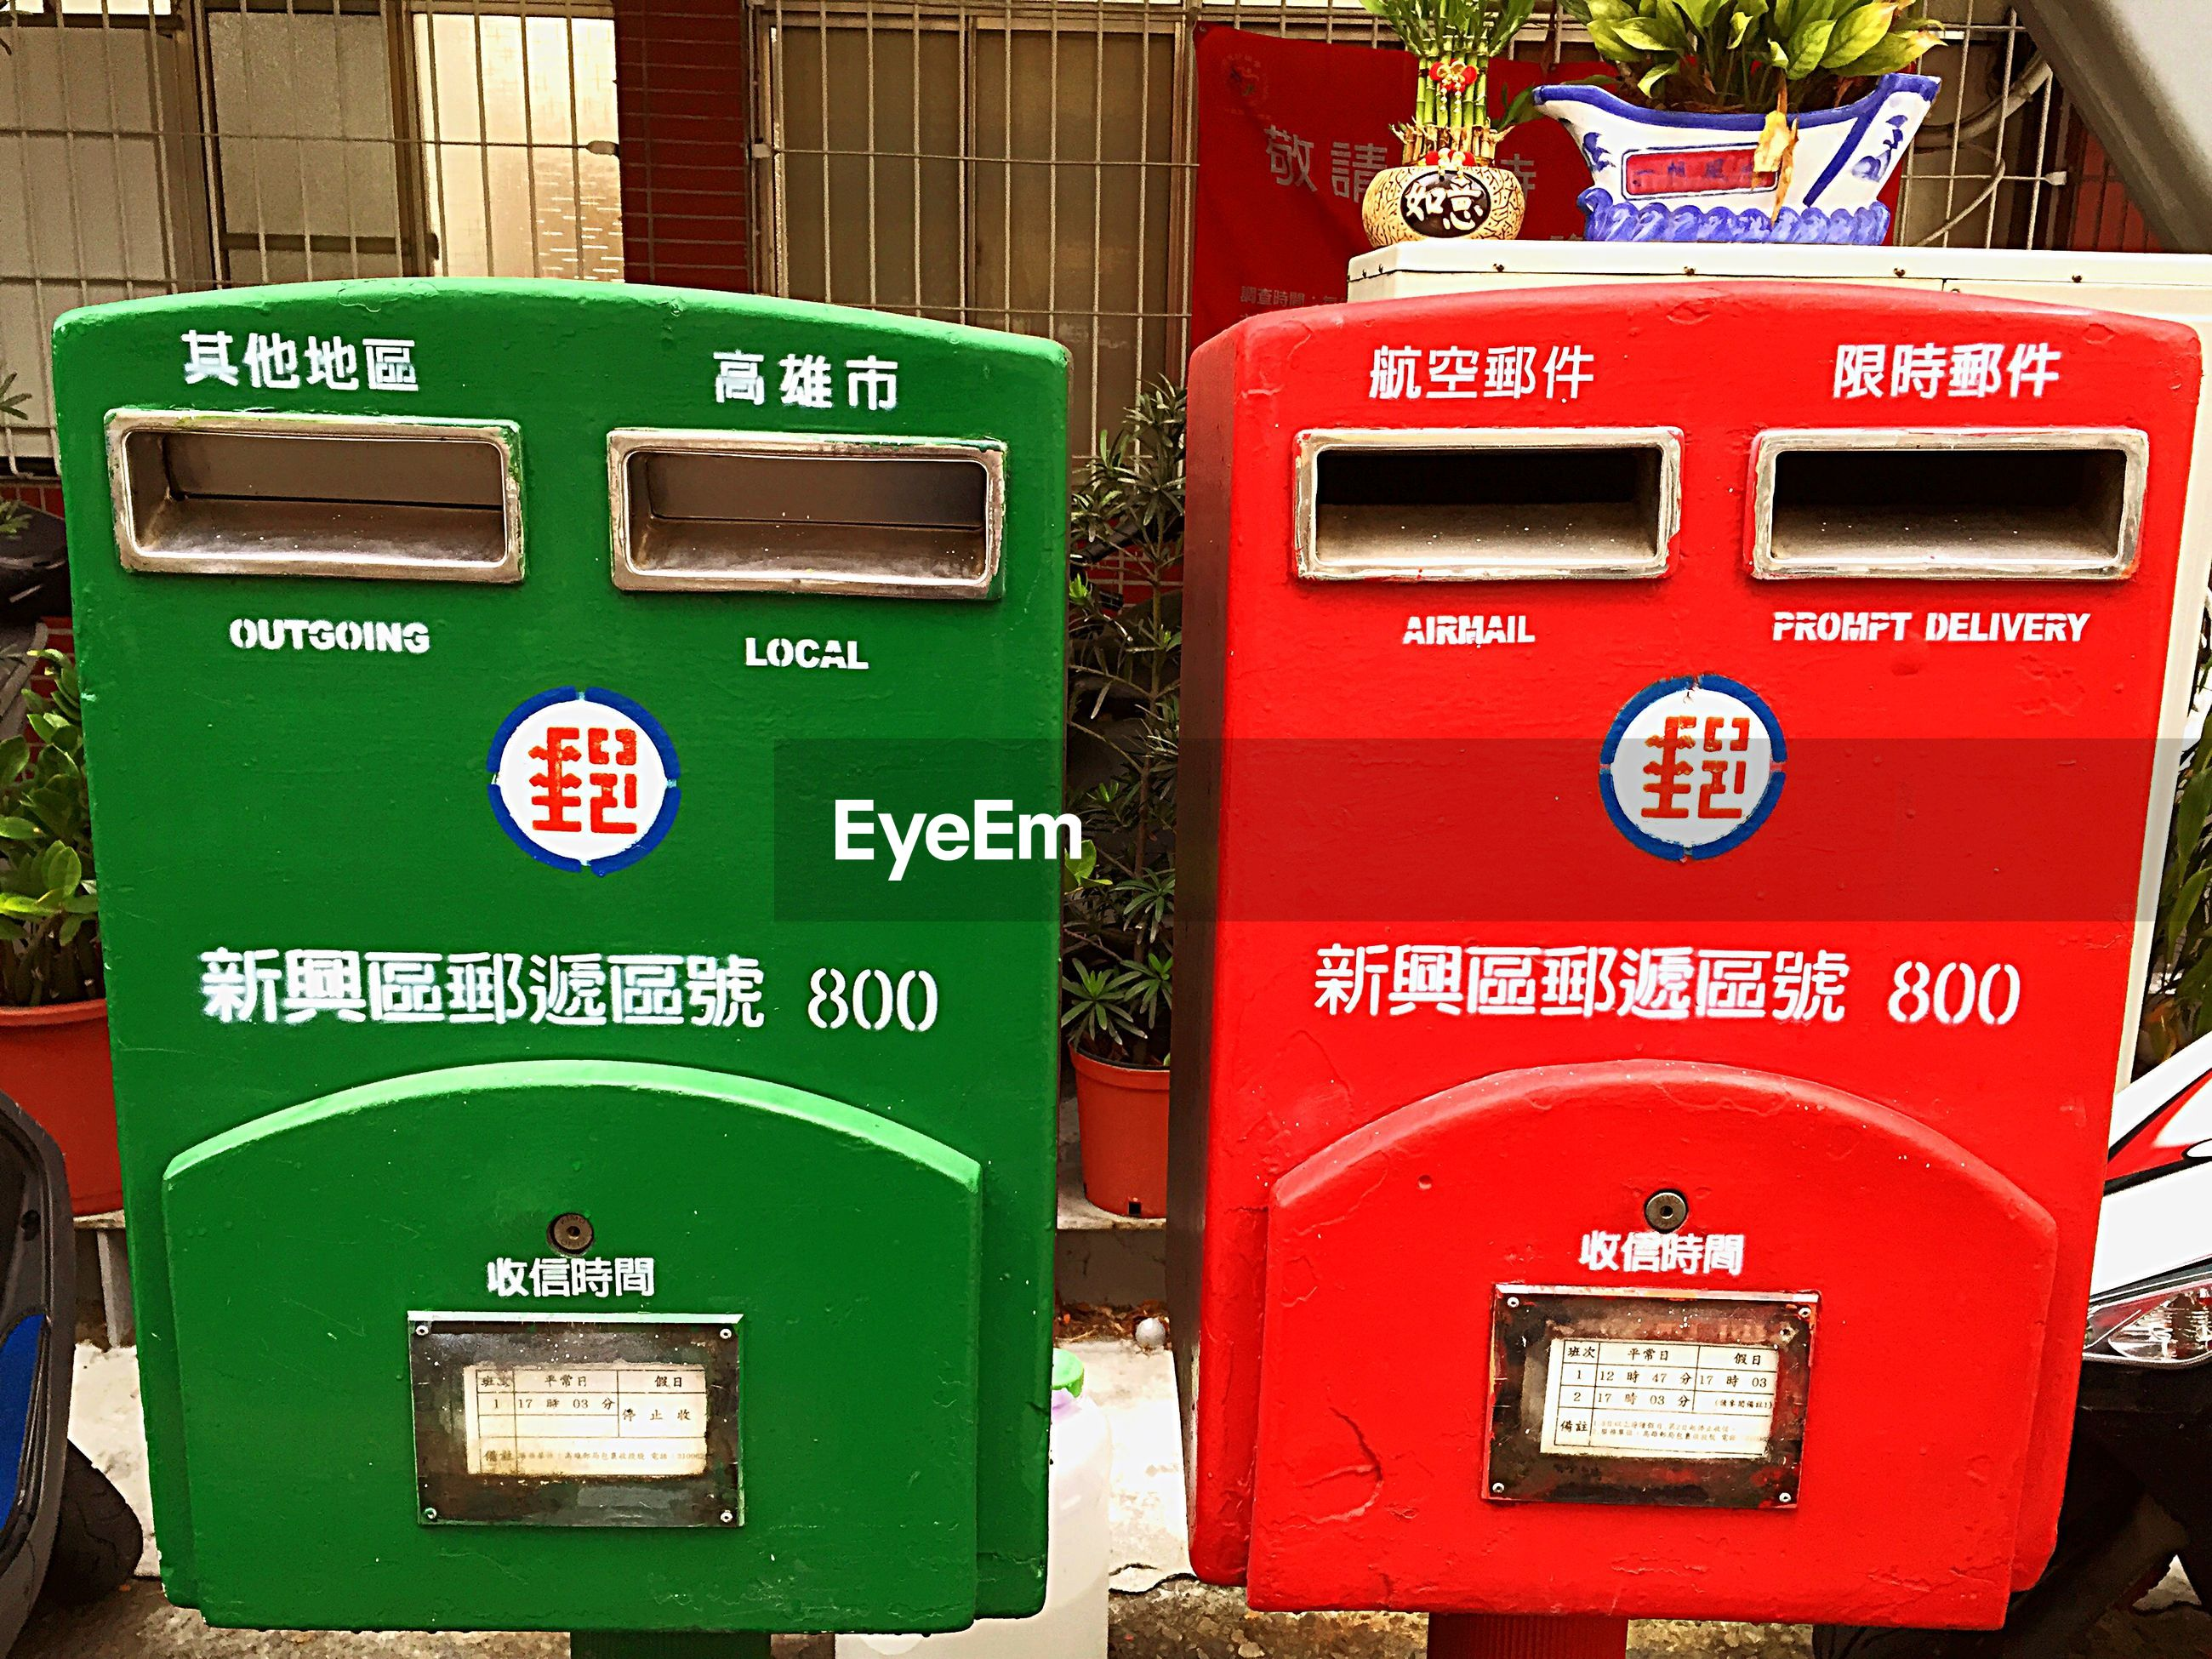 text, communication, western script, red, number, capital letter, information sign, non-western script, information, close-up, mailbox, sign, guidance, warning sign, mail, metal, no people, pay phone, telephone booth, direction